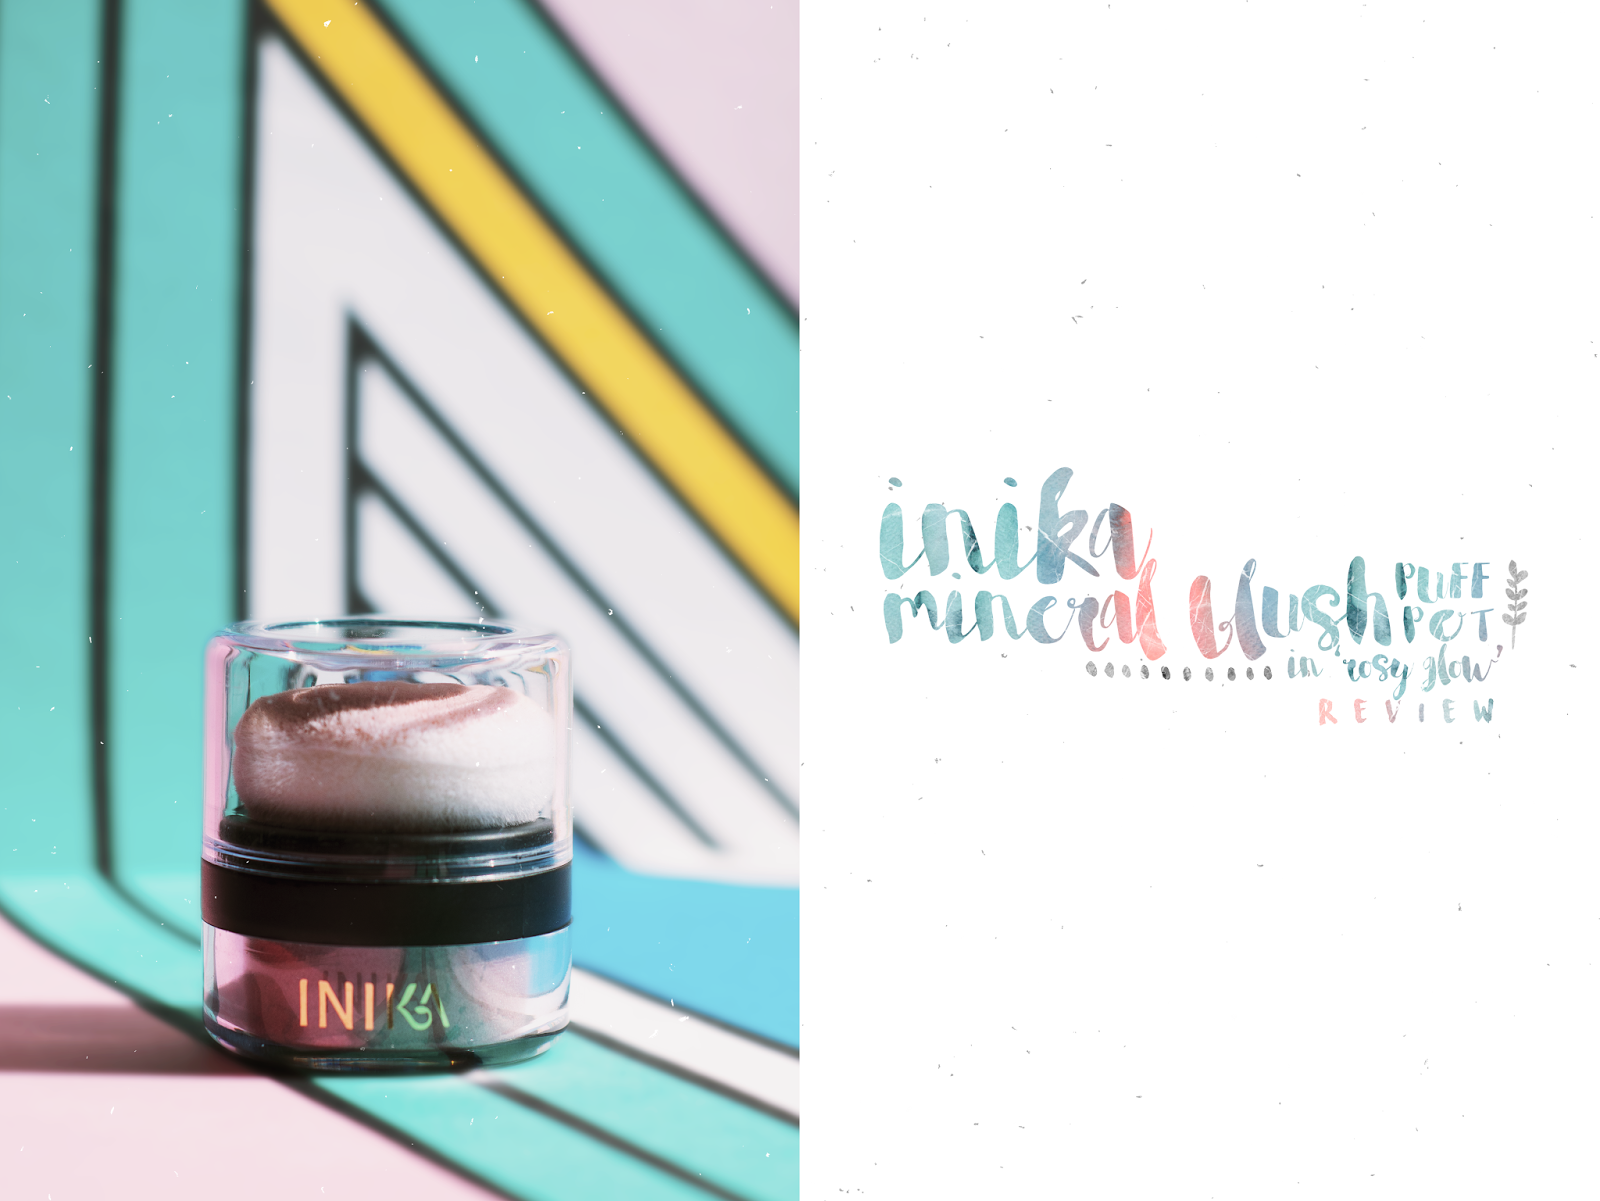 Inika Mineral Blush Puff Pot in Rosy Glow Natural Organic Beauty Vegan Cruelty Free Review